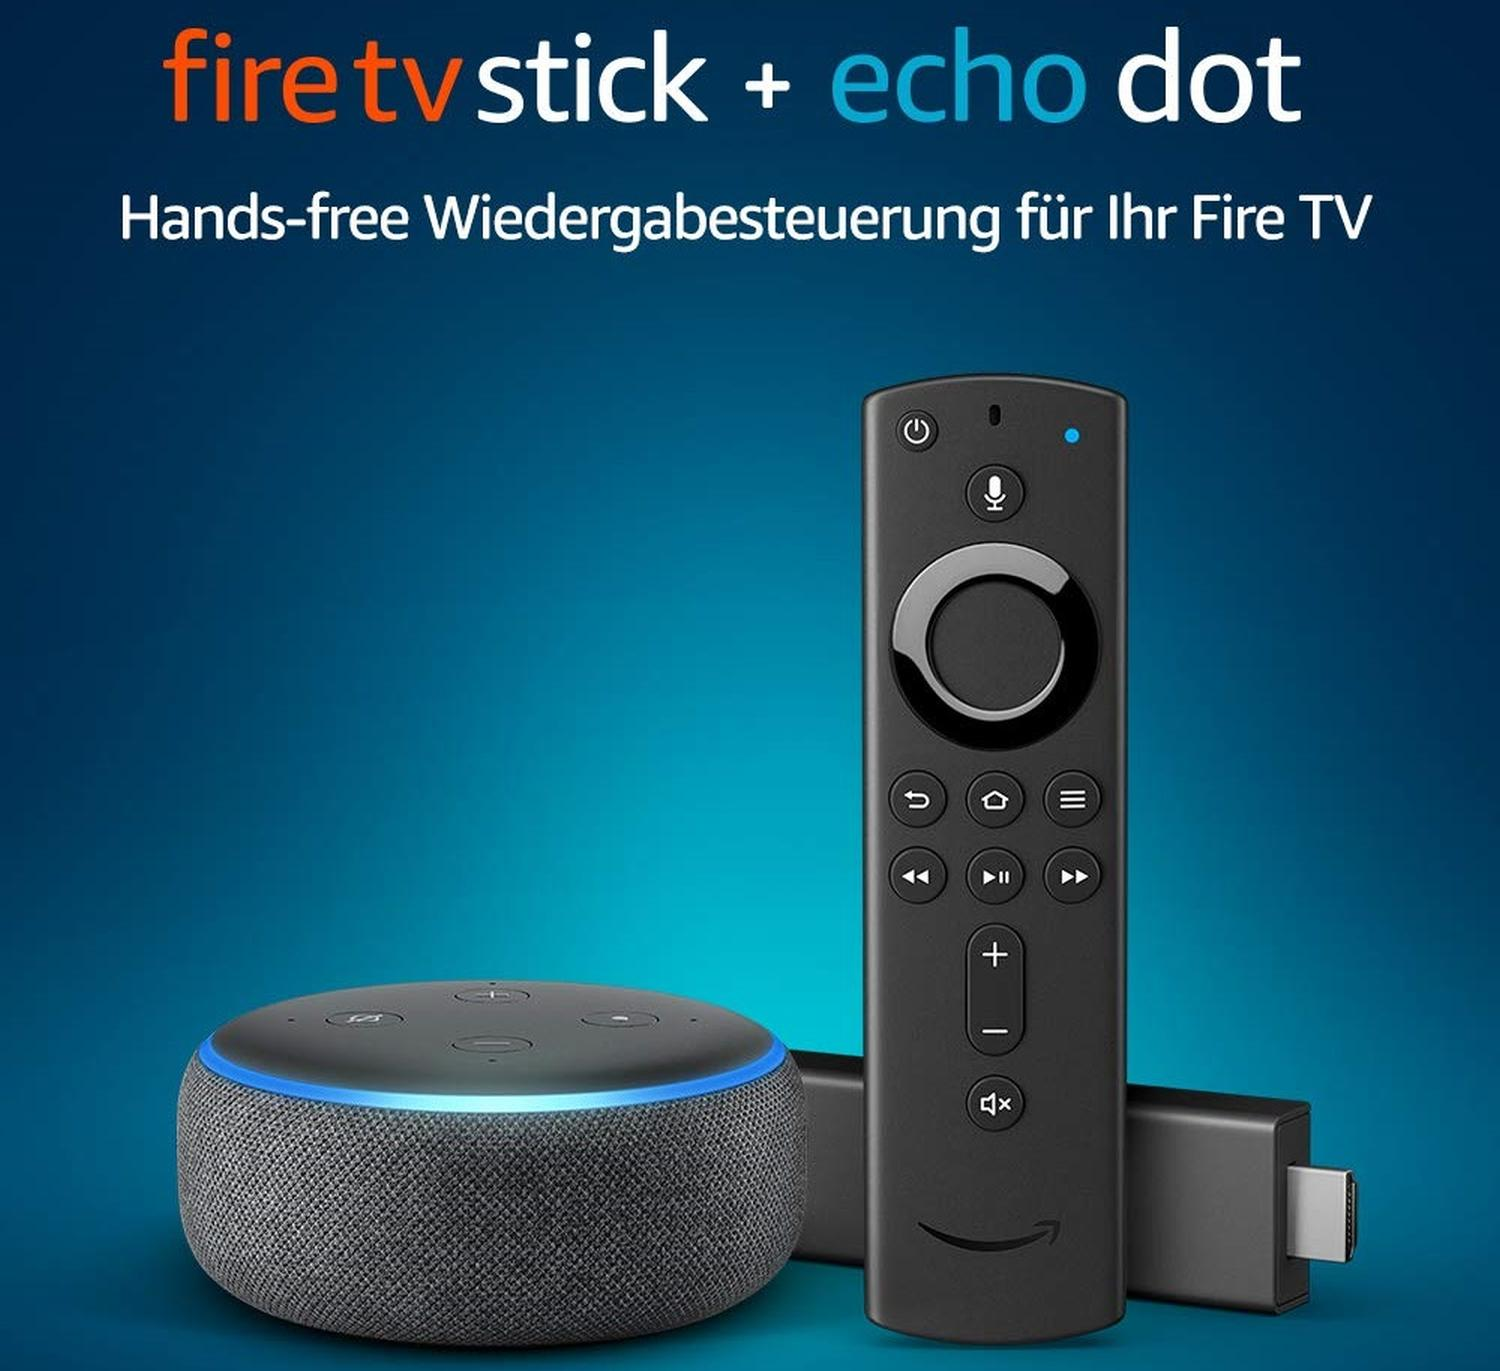 amazon aktion fire tv echo dot